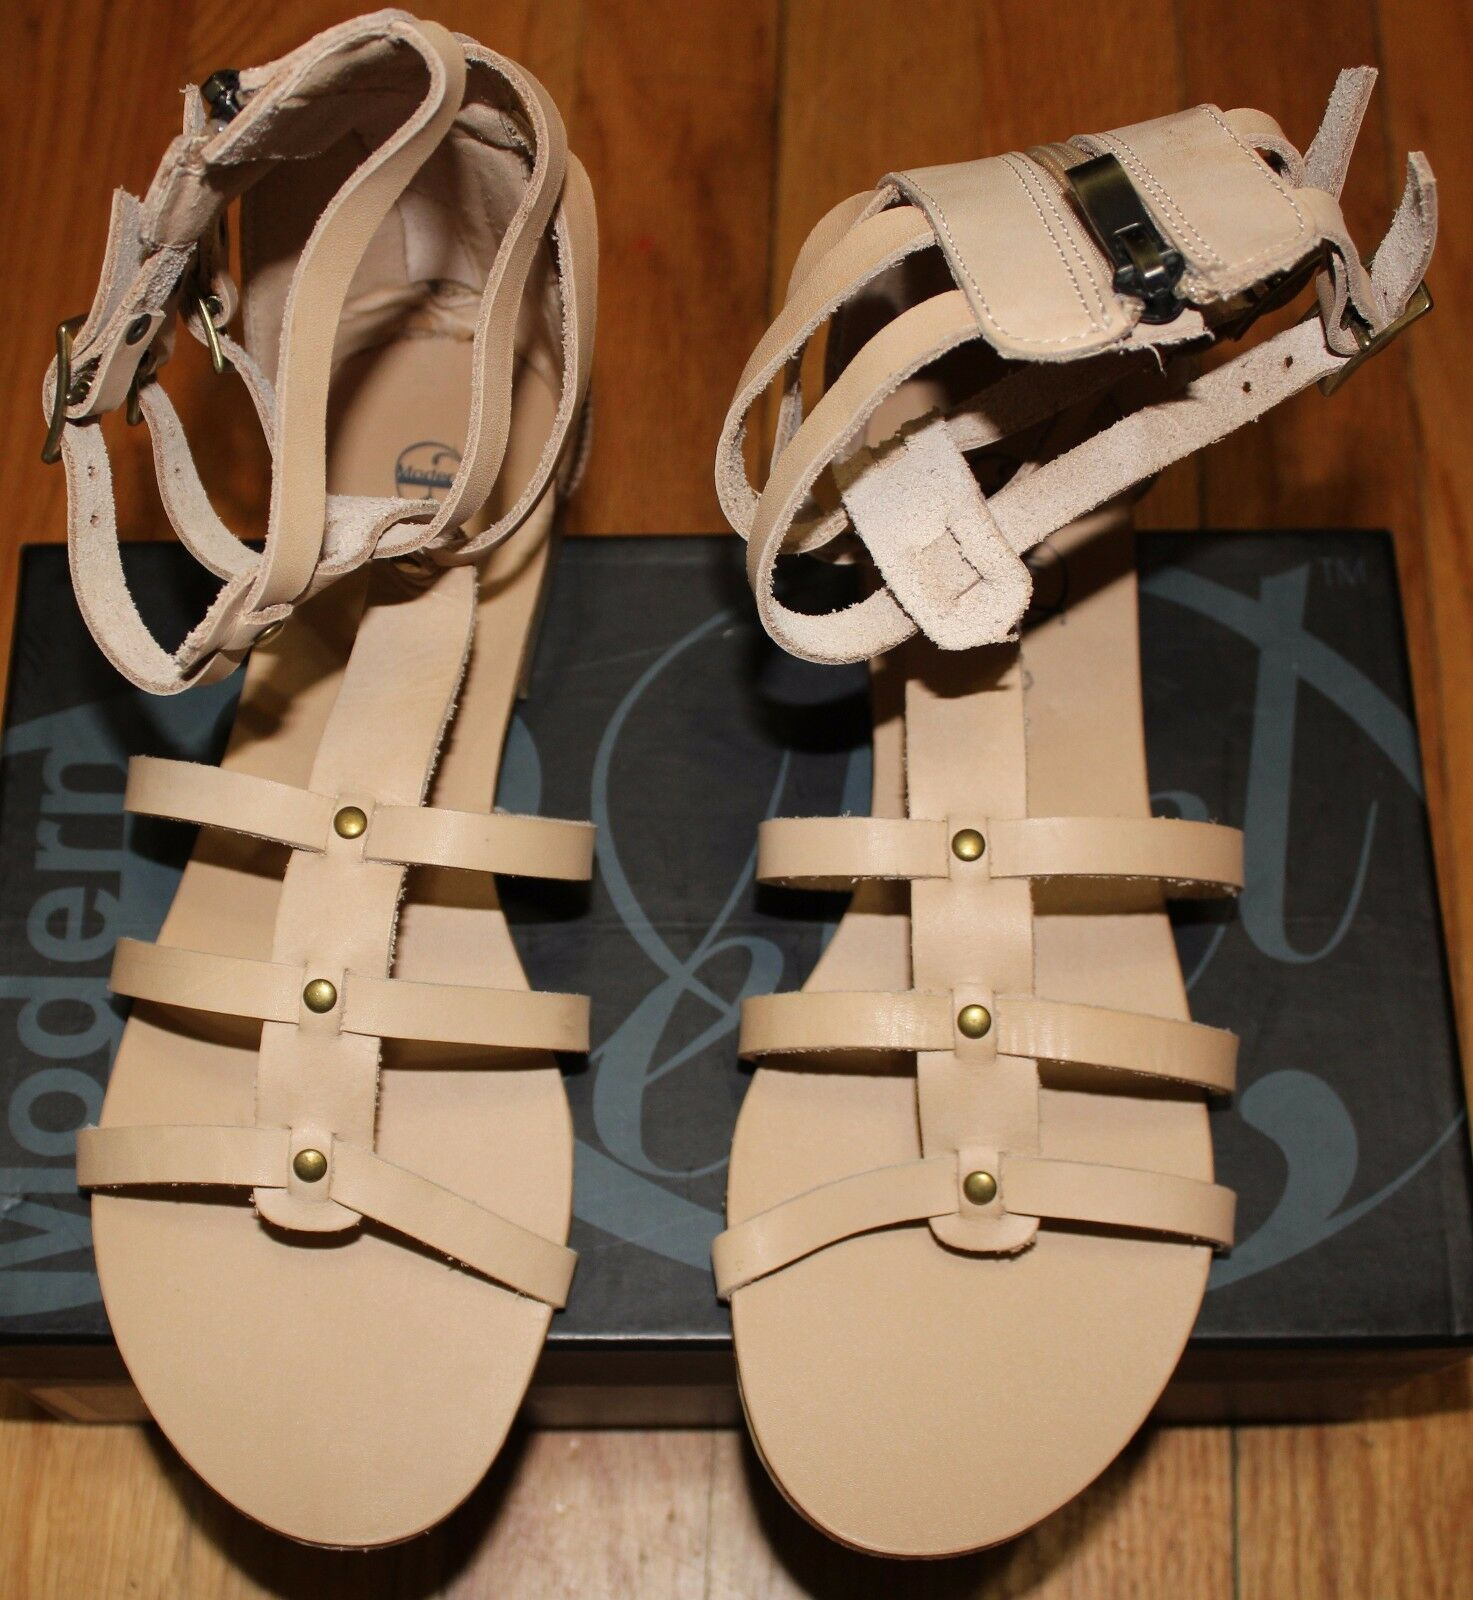 180 MODERN REBEL LAMBORN BEIGE GLADIATOR LEATHER SANDAL SZ 6.5M US